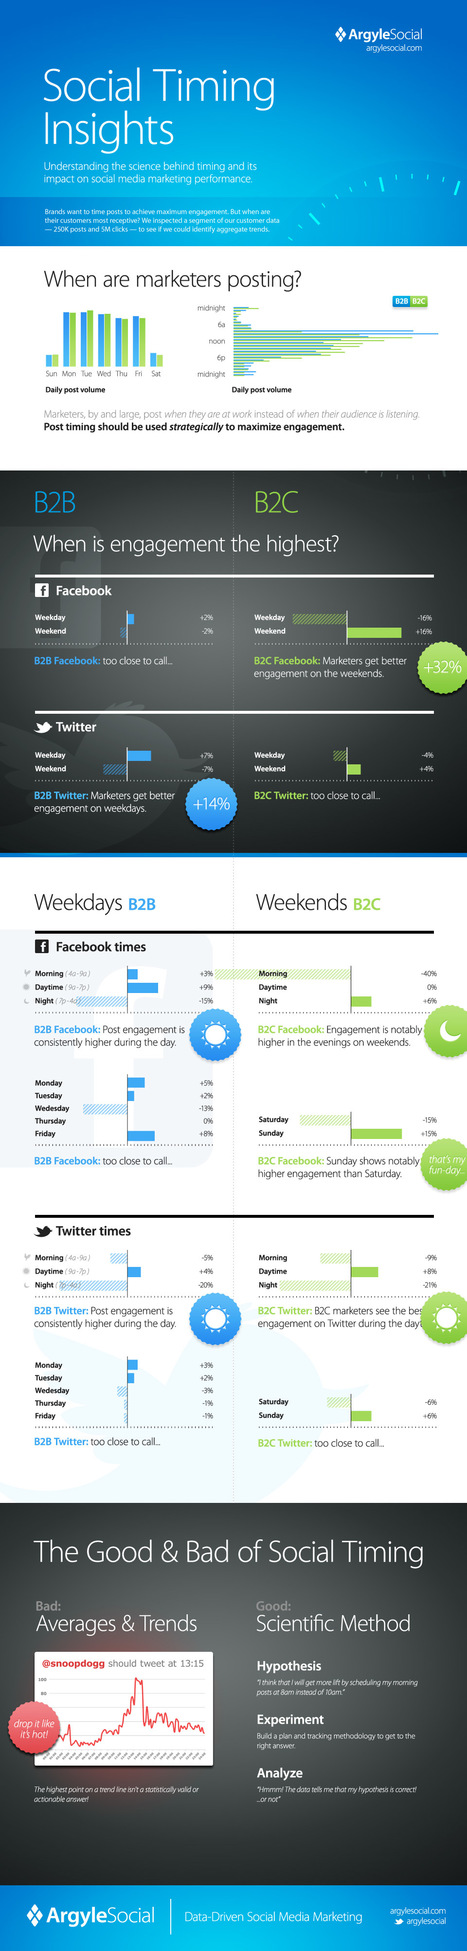 B2C Facebook Results Are 30% Above Average on Sundays | Small Business Marketing | Scoop.it